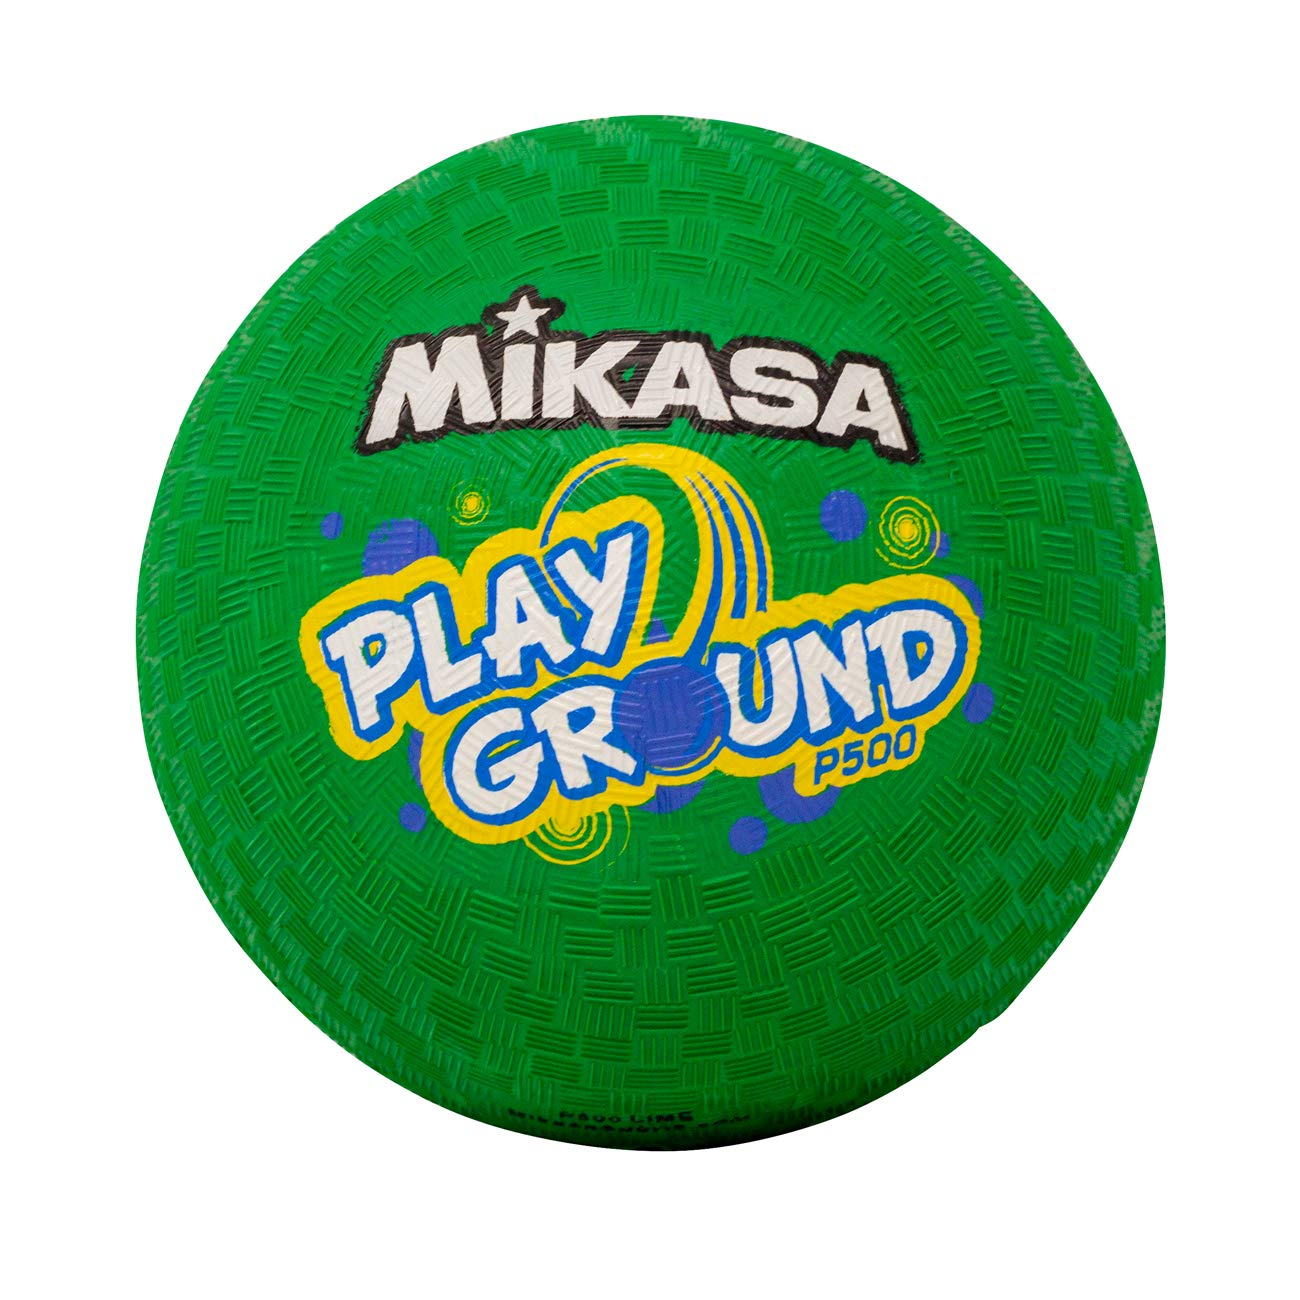 Mikasa Playground Ball (Lime, 5-Inch) by Mikasa Sports